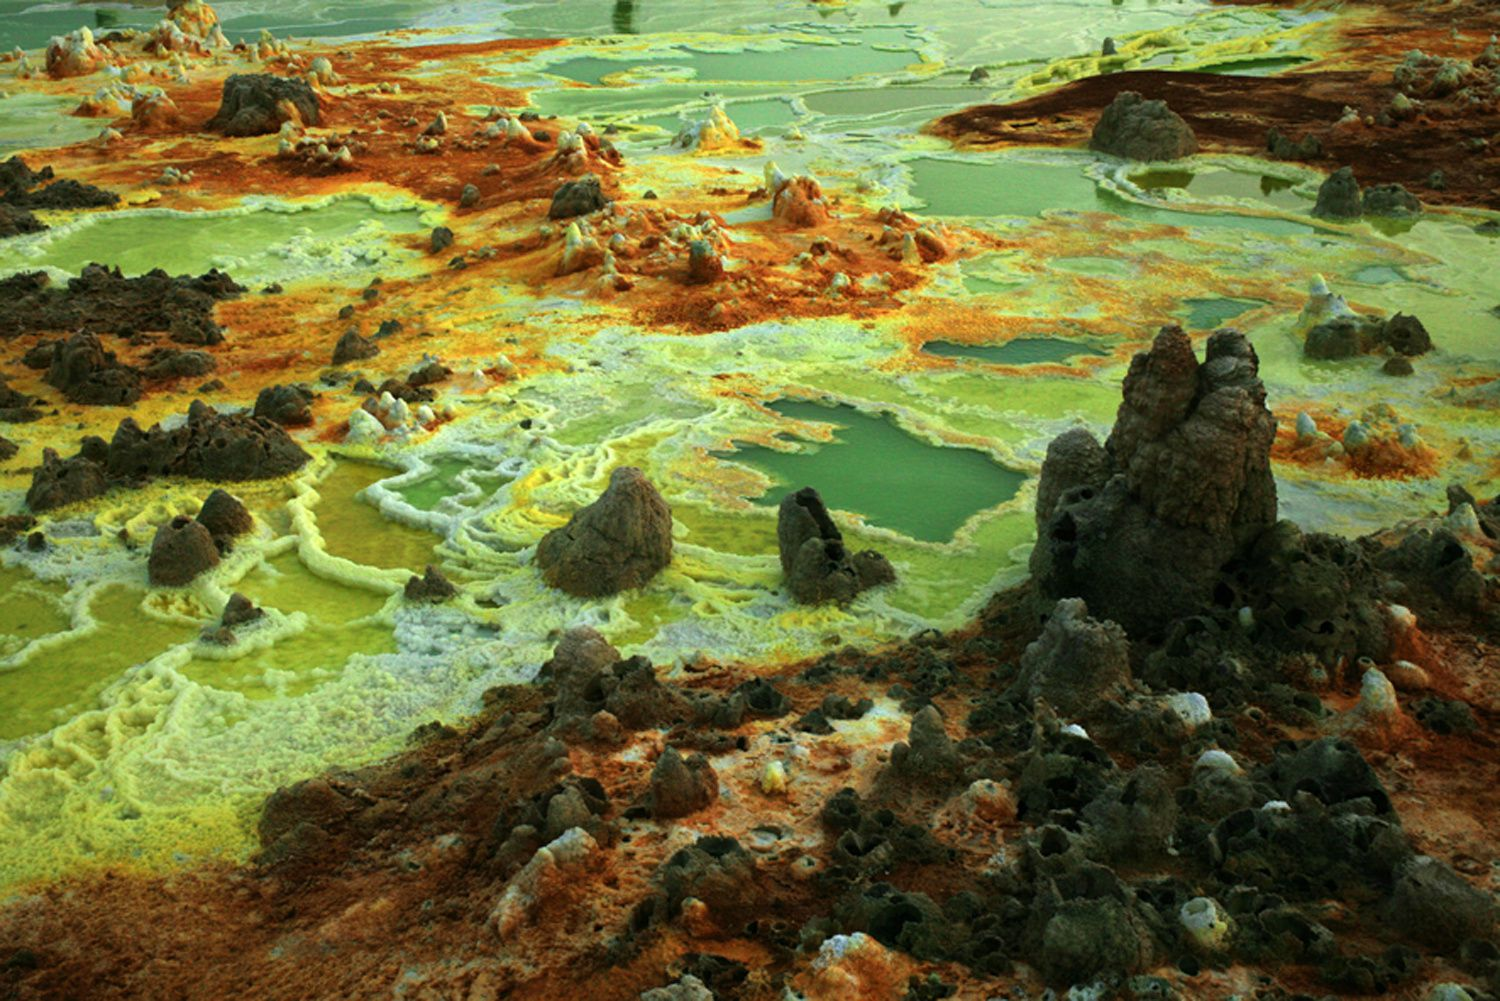 Dallol - bassin d'acide ourlés de sel - photo © Bernard Duyck 2007